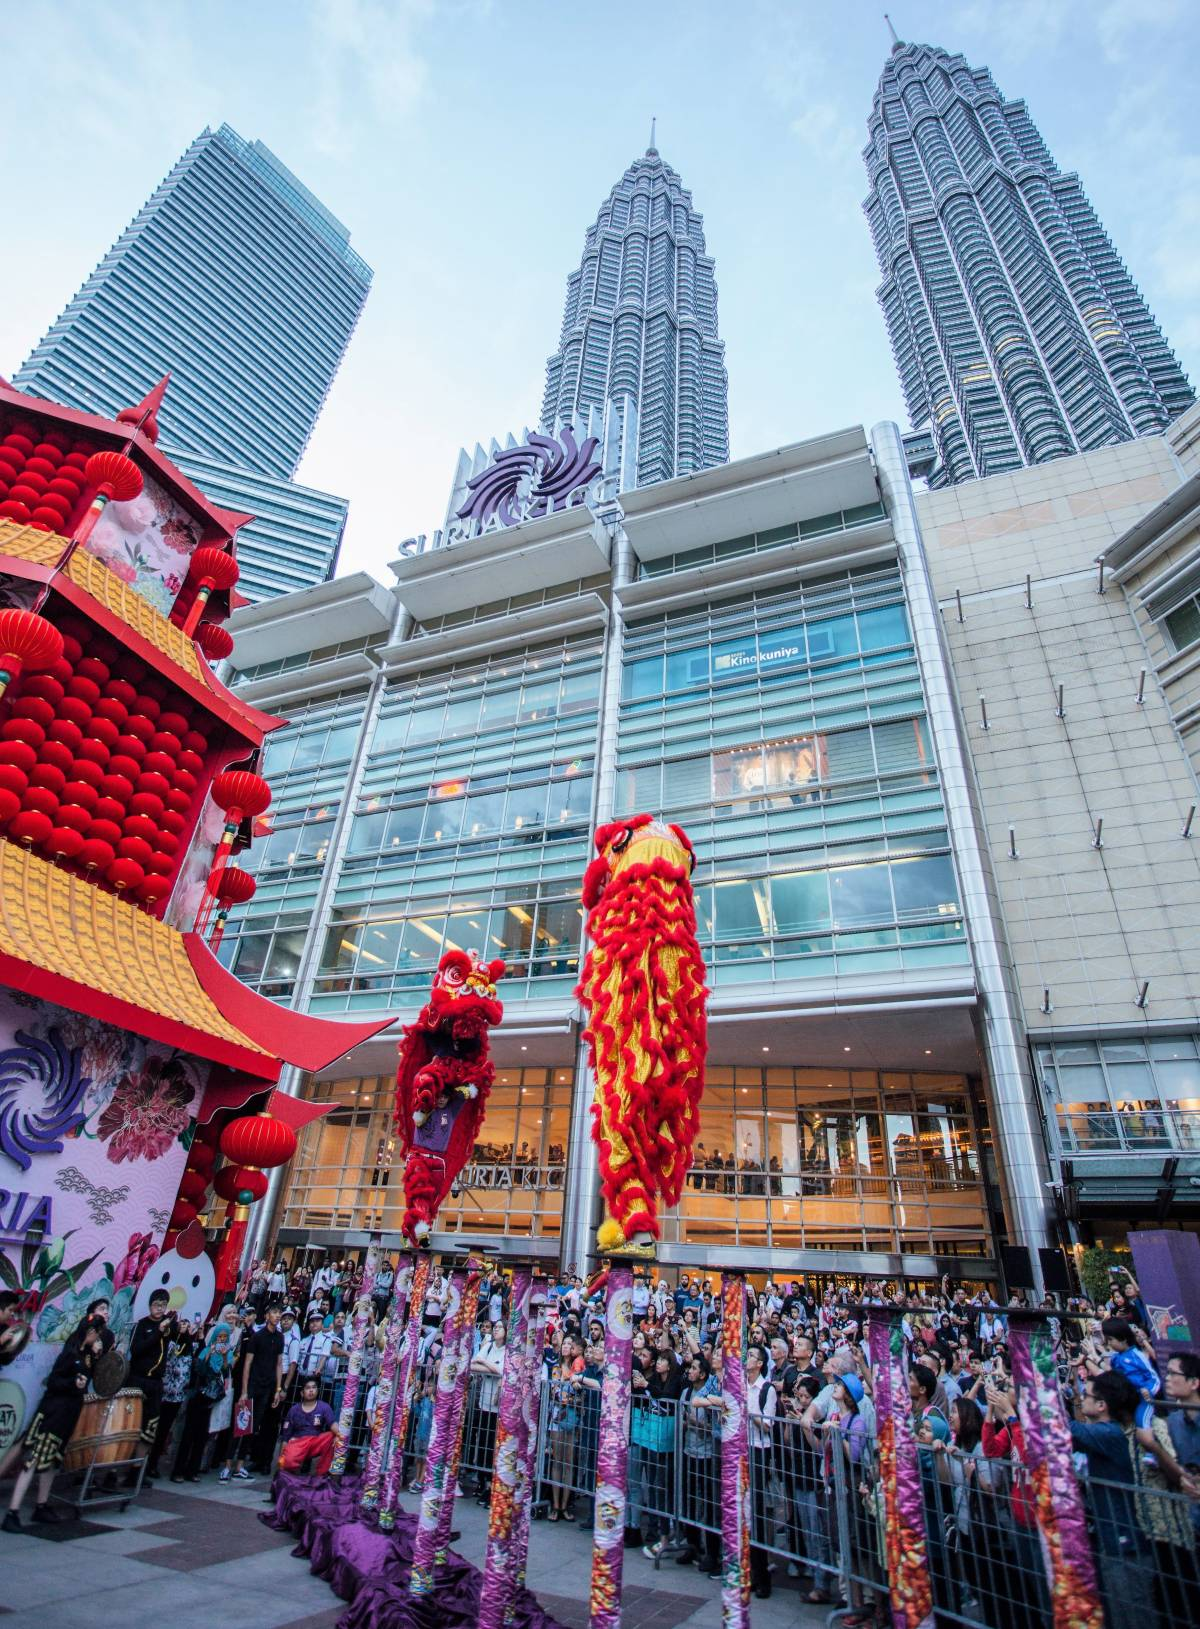 SHOPPERS DELIGHTED BY VIBRANT CHINESE NEW YEAR CELEBRATION AT SURIA KLCC